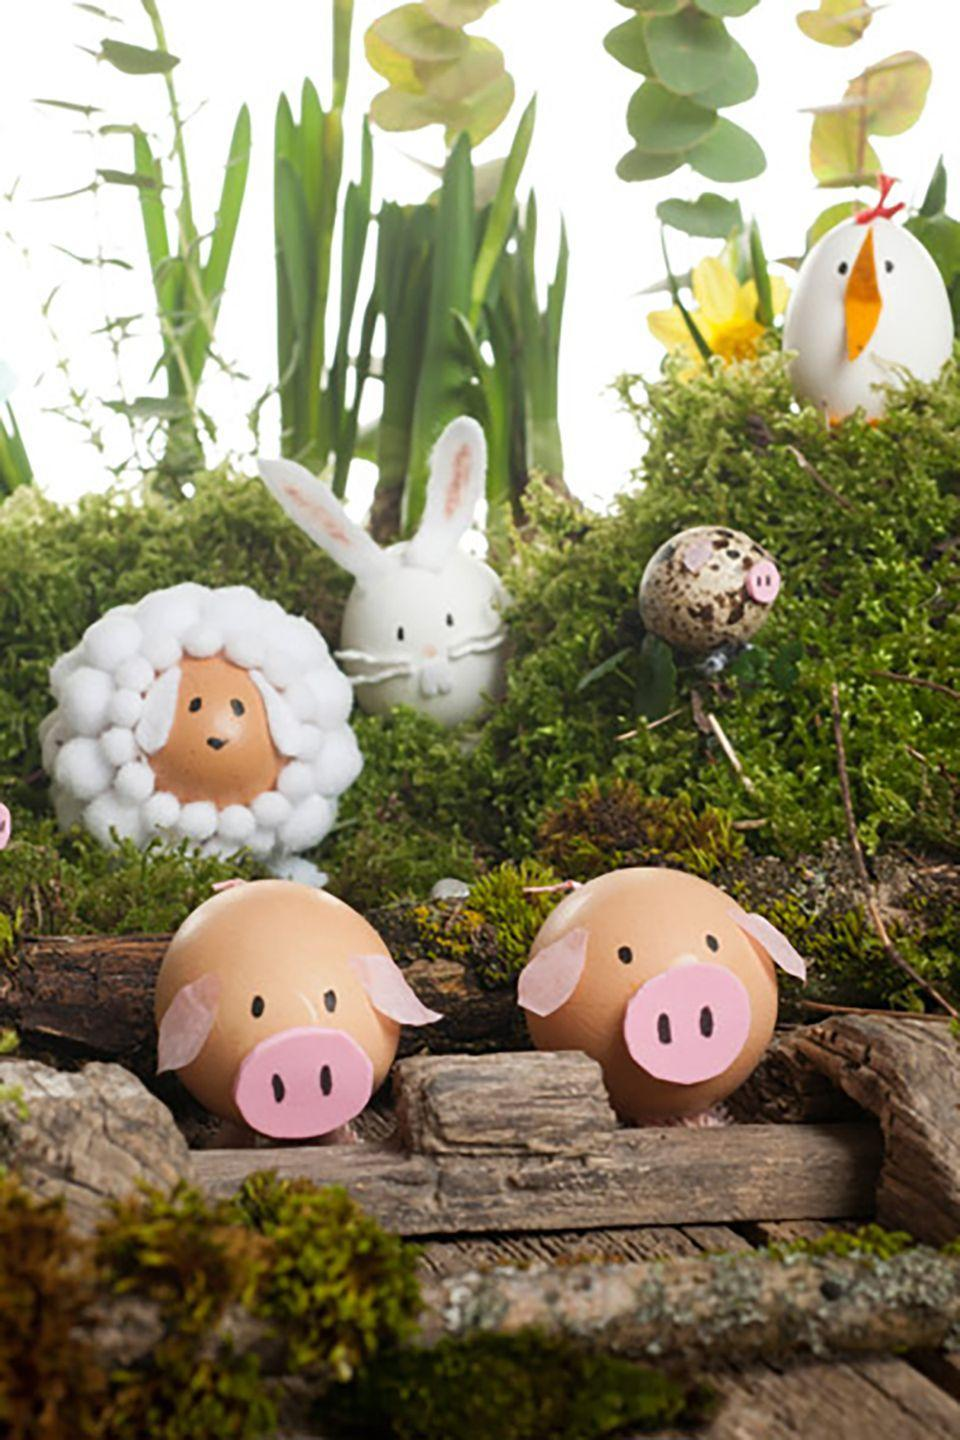 "<p>This farm scene's cuteness level is off the scale. </p><p><strong>Get the tutorial at <a href=""http://look-what-i-made.com/2015/03/27/easter-decoration-with-animals-out-of-egg-shells/"" rel=""nofollow noopener"" target=""_blank"" data-ylk=""slk:Look What I Made"" class=""link rapid-noclick-resp"">Look What I Made</a>.</strong></p>"